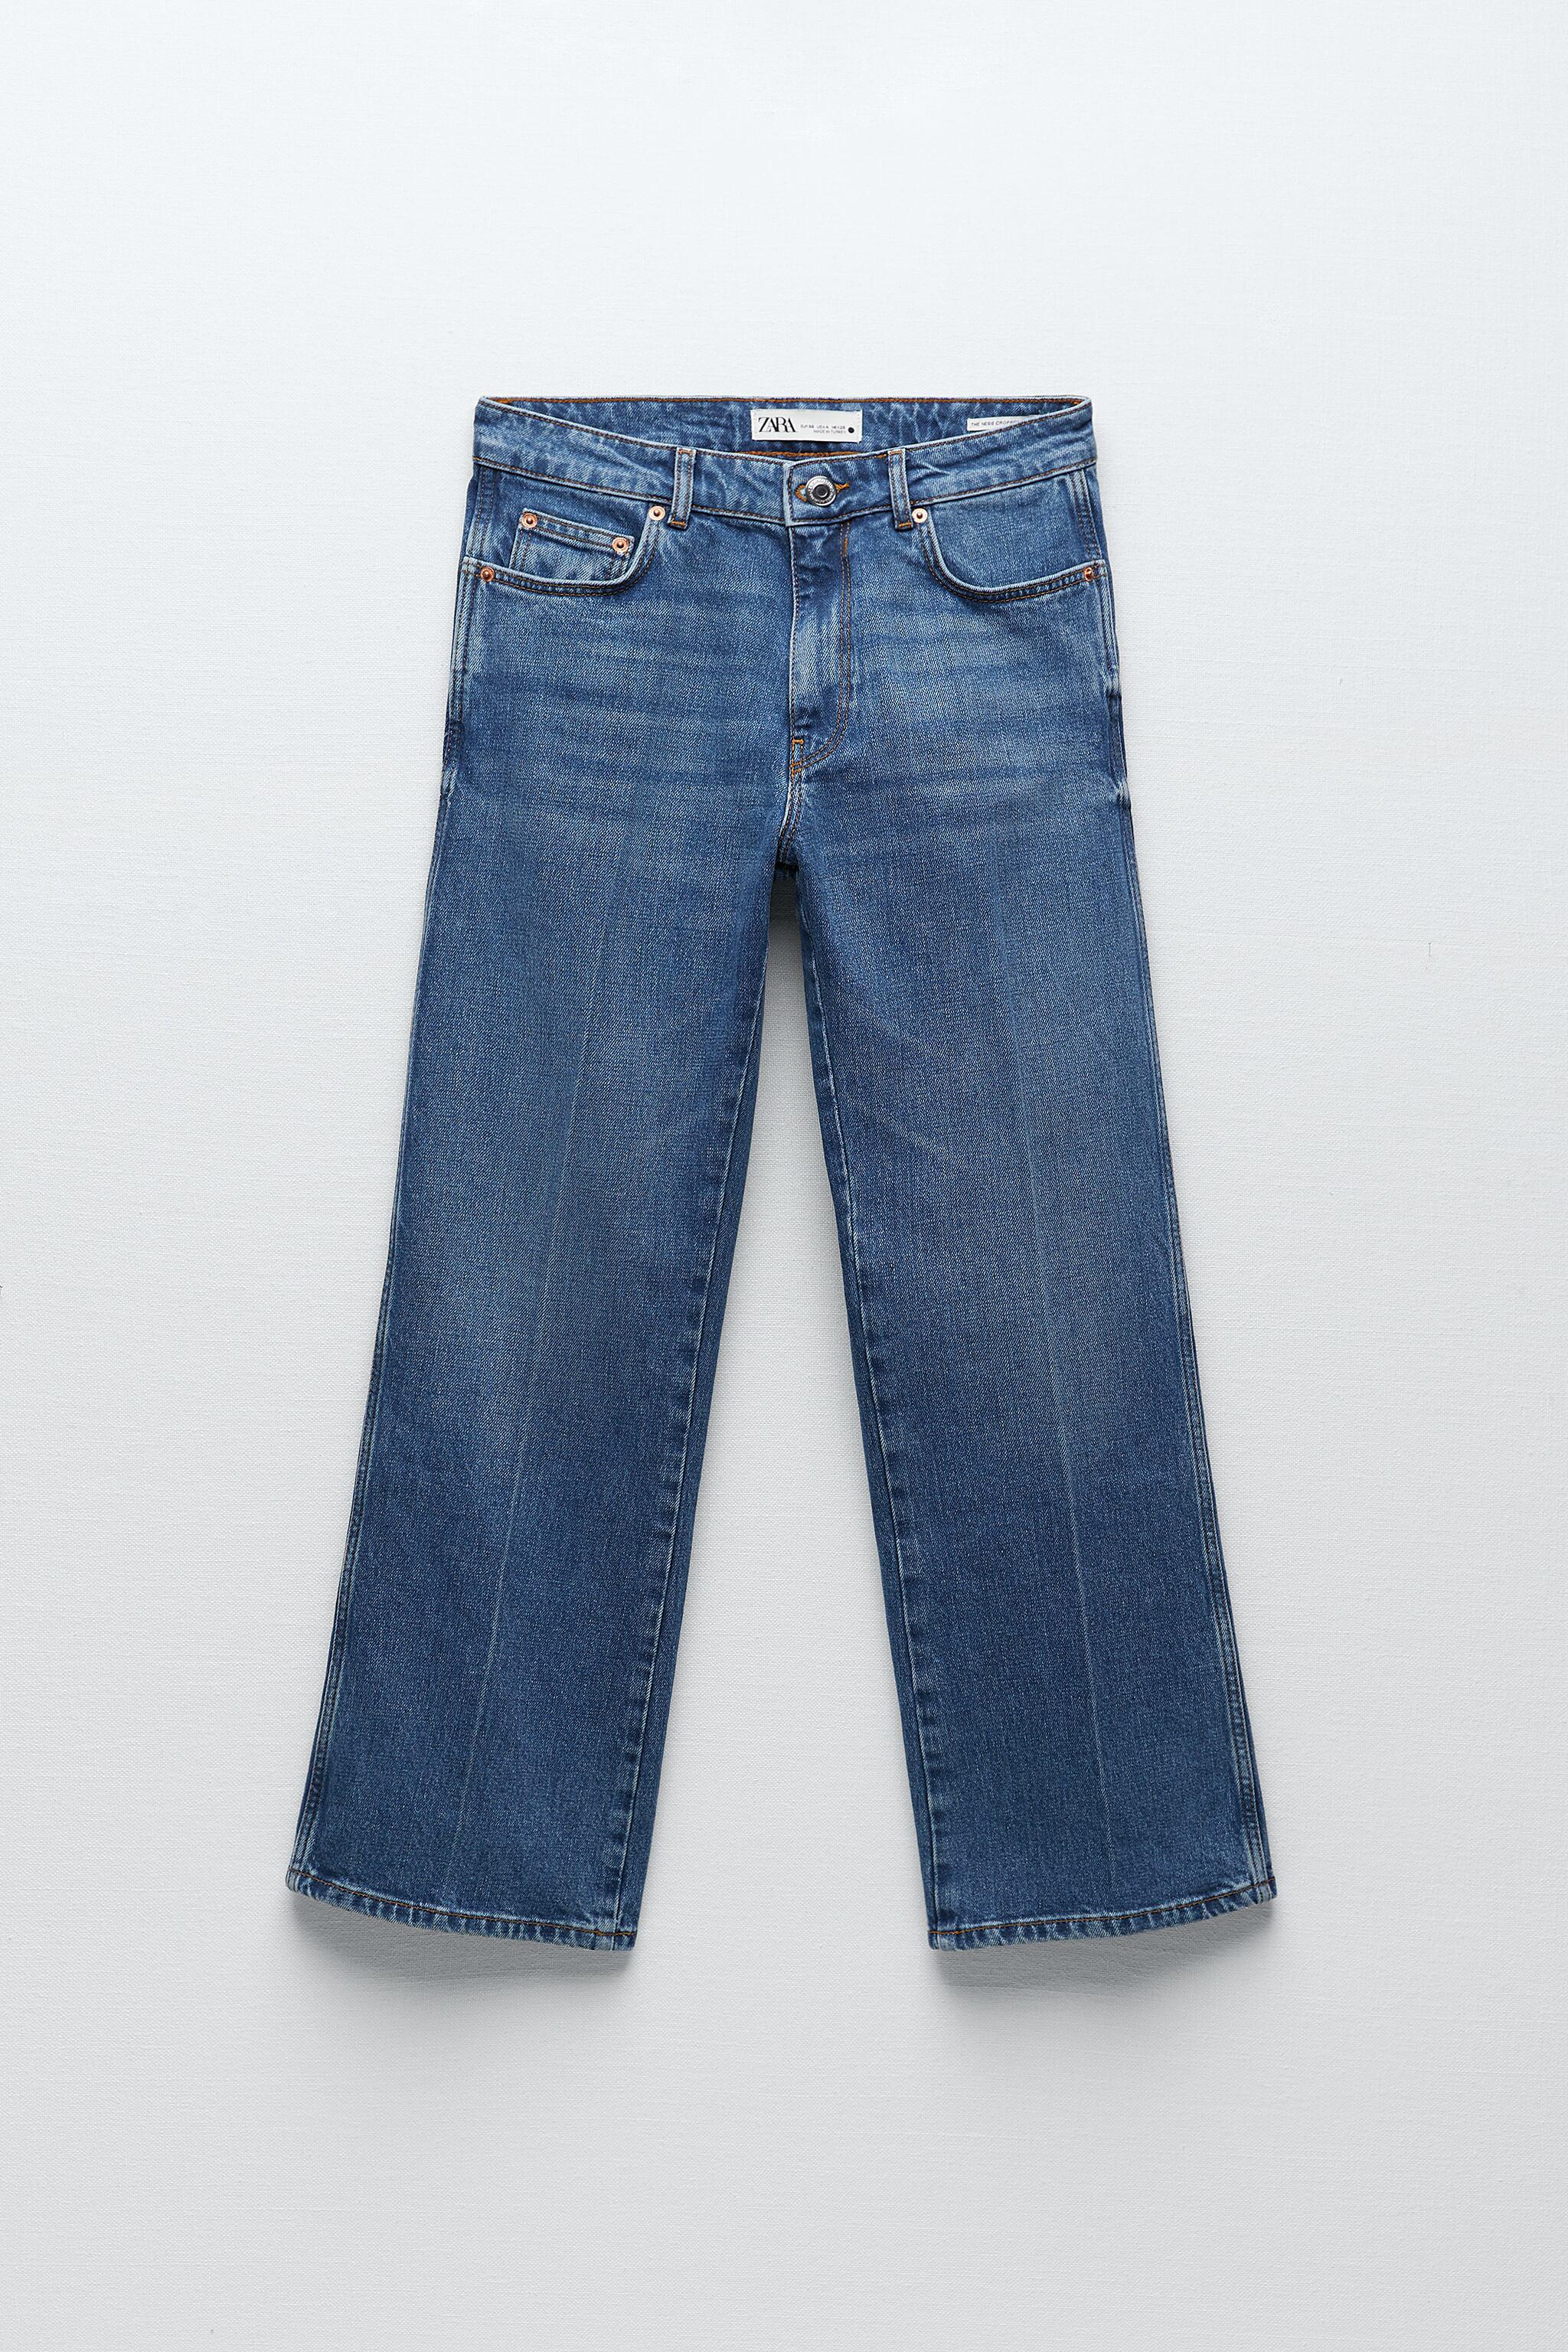 ZW THE NESS CROPPED FLARE JEANS 5